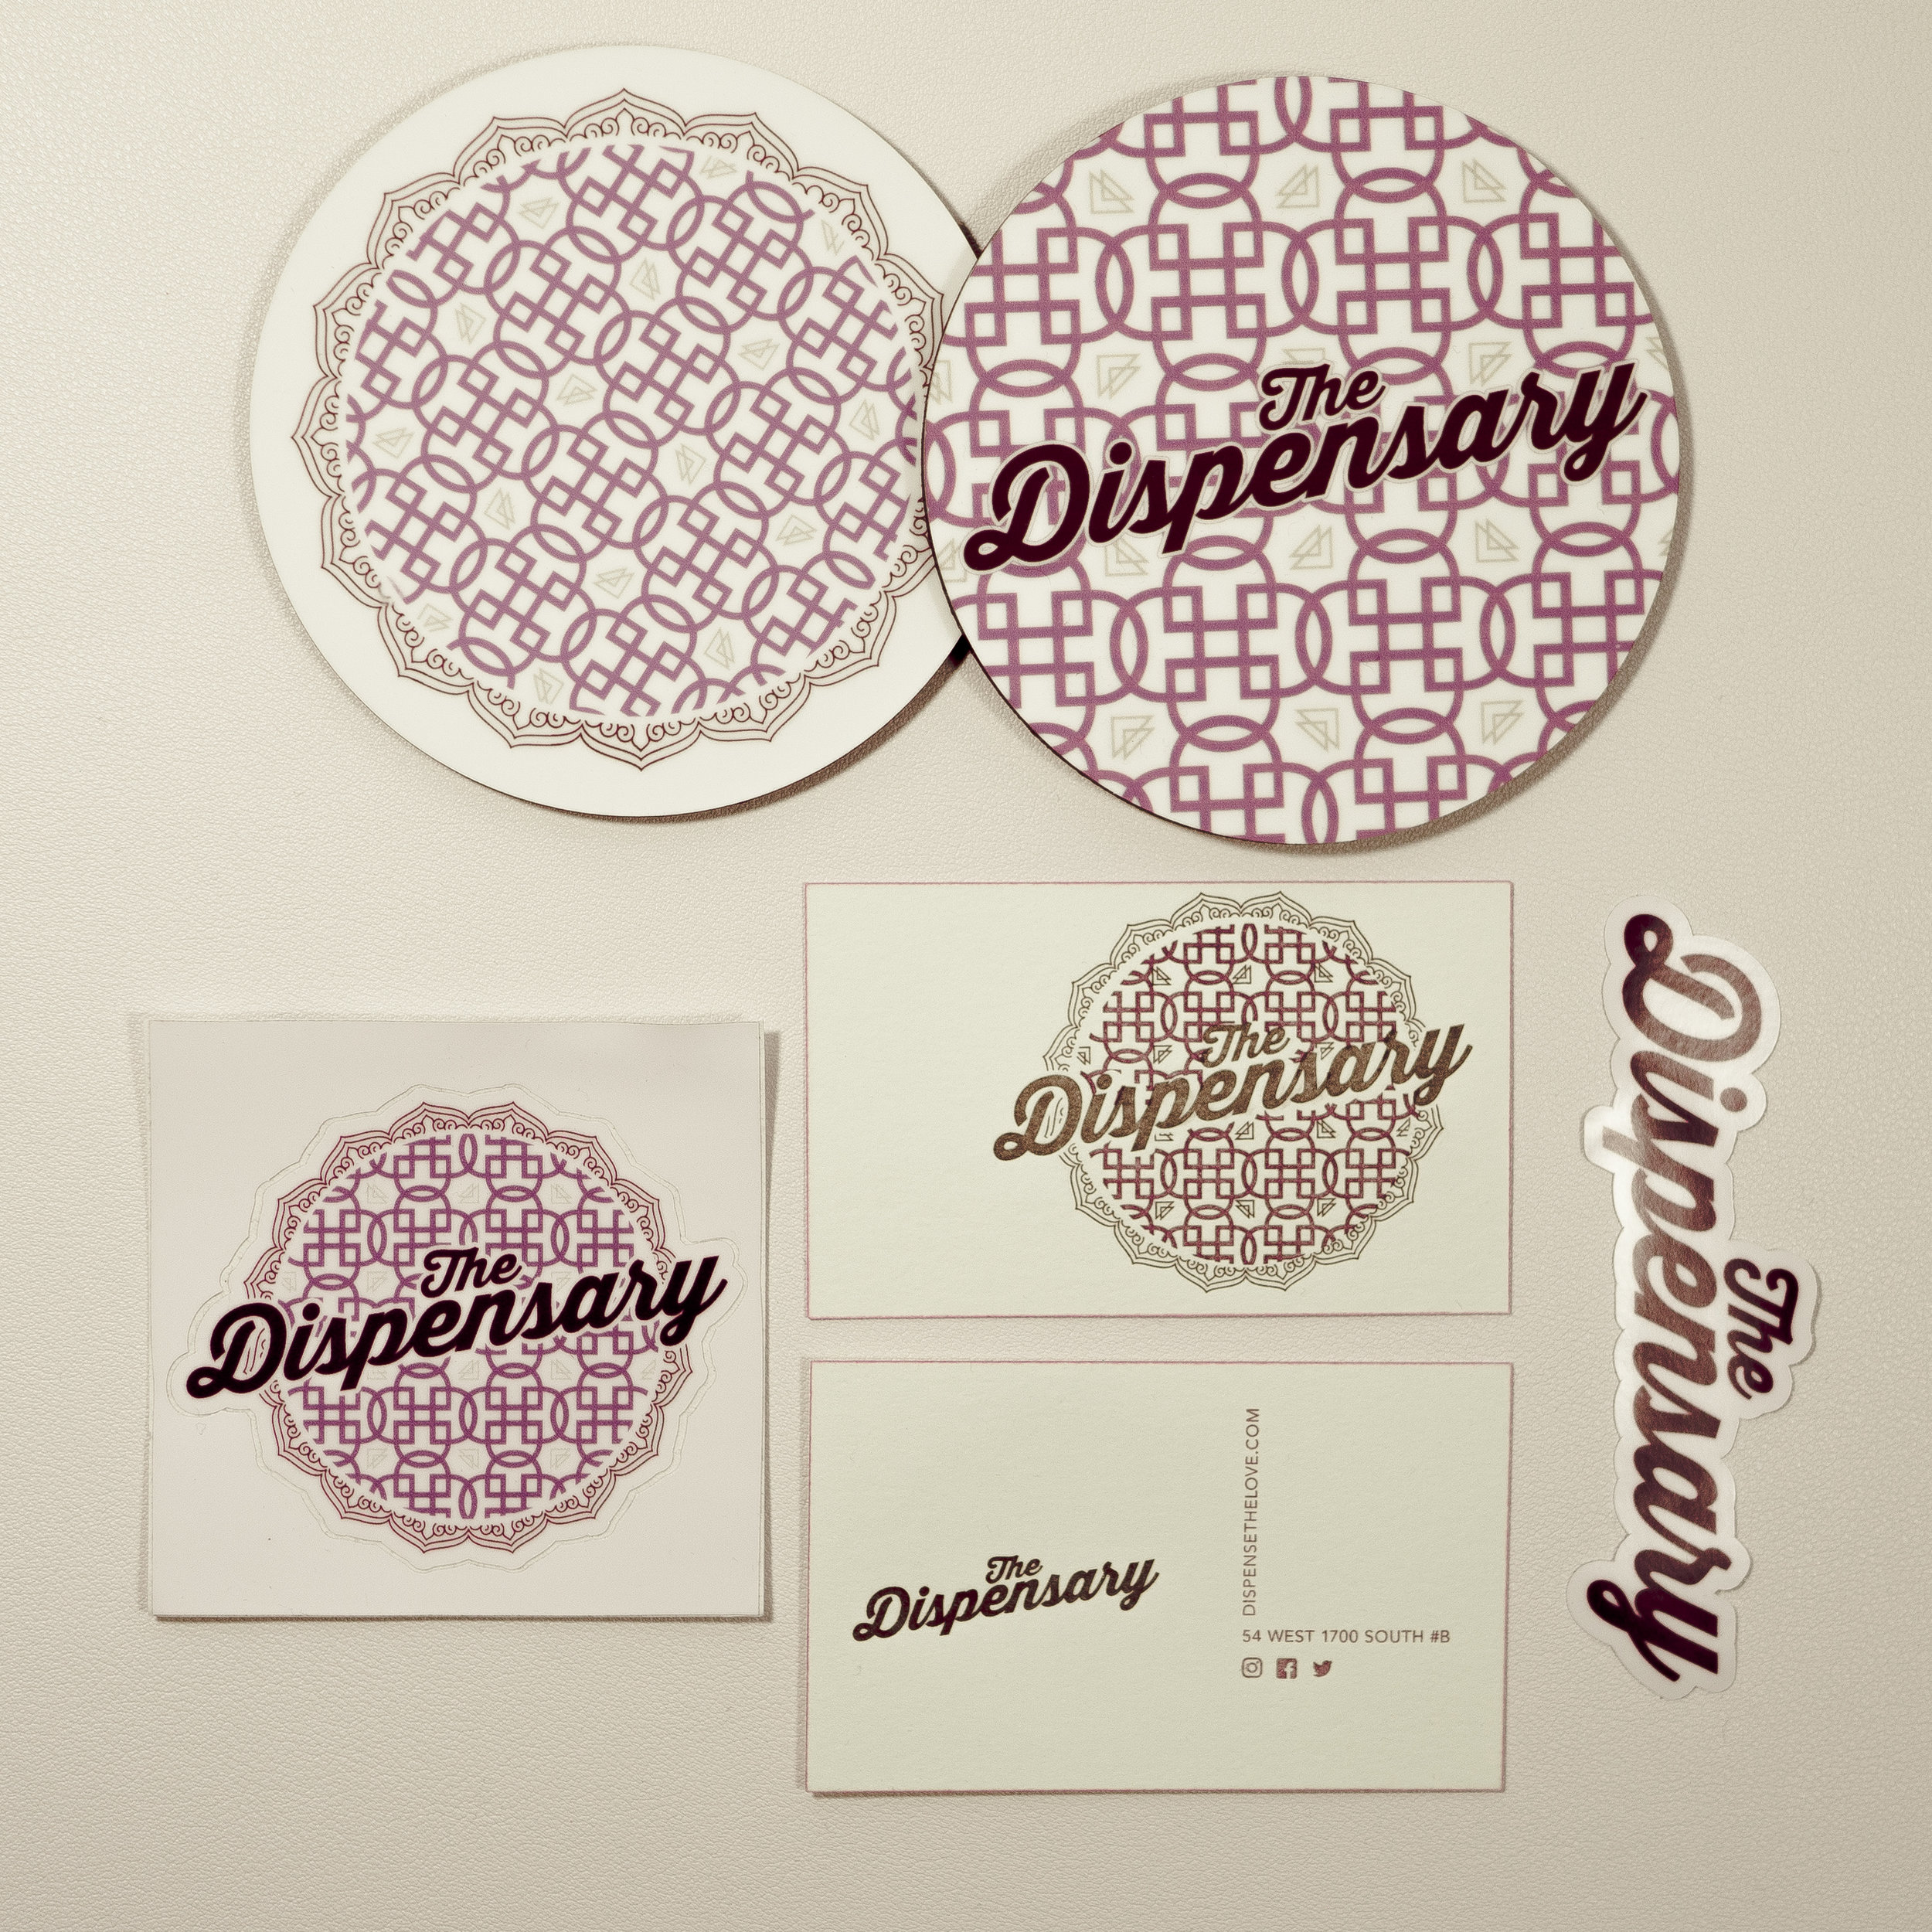 Dispensary Branding Project 2017